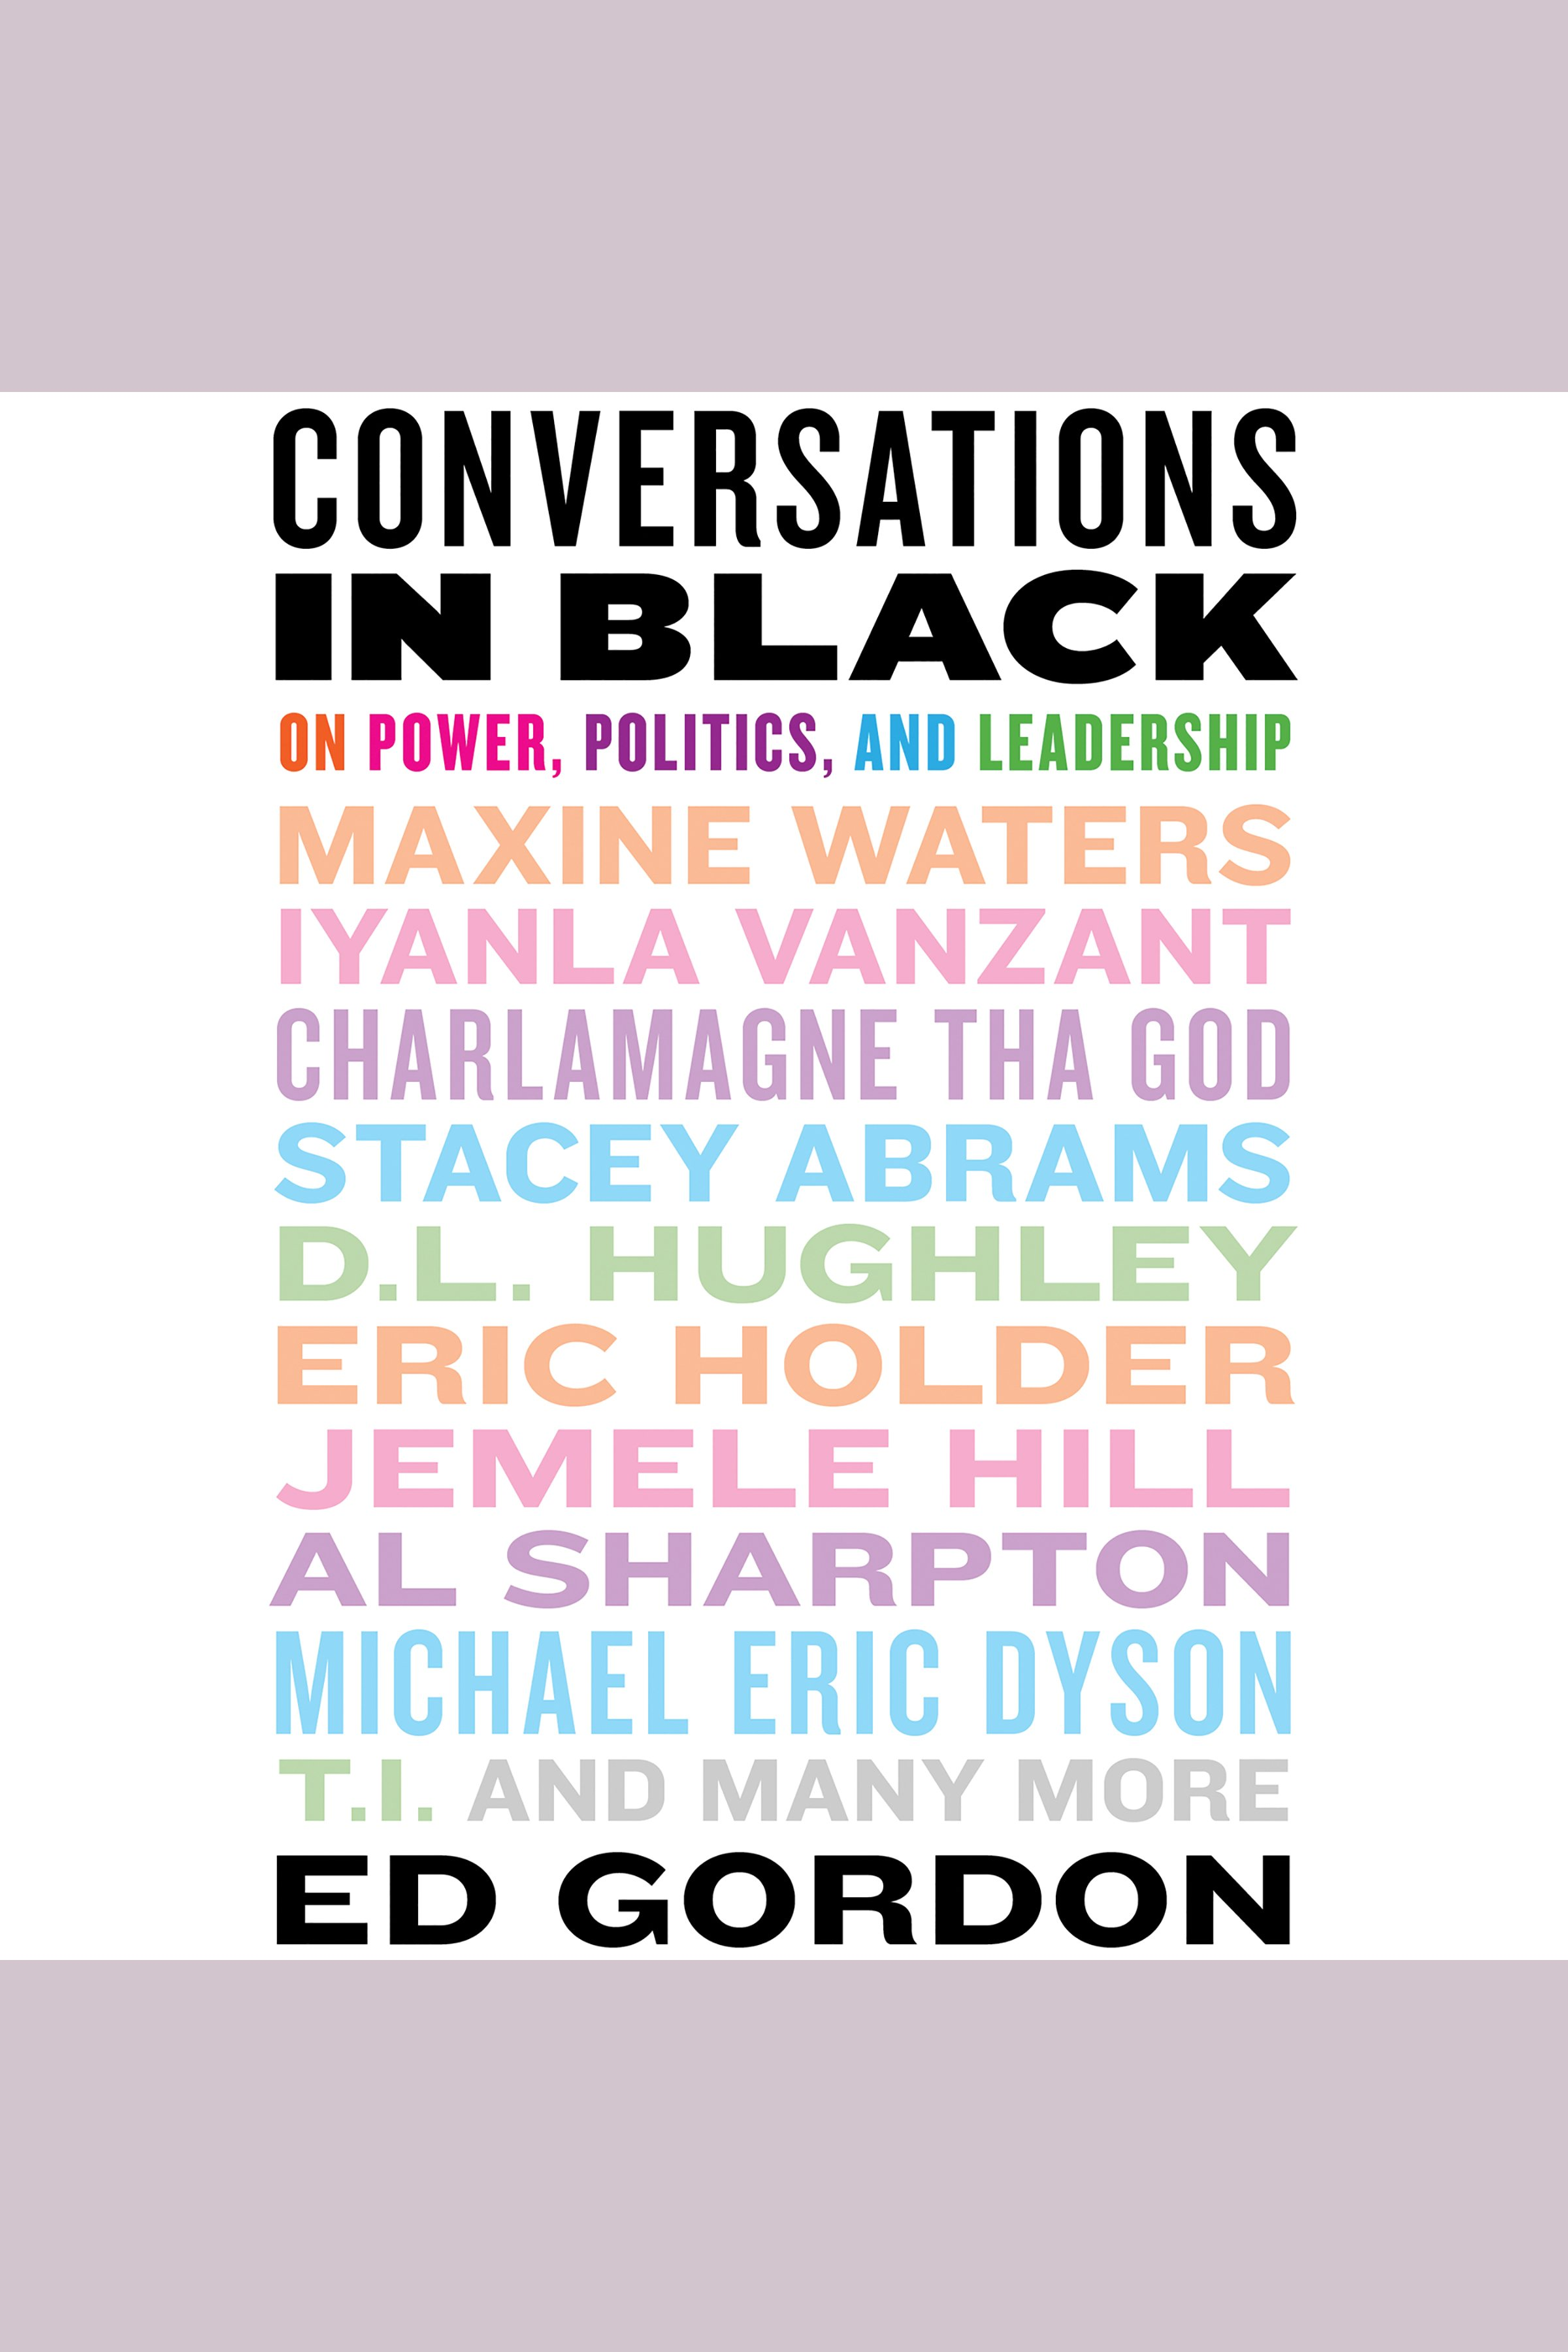 Conversations in Black On Power, Politics, and Leadership